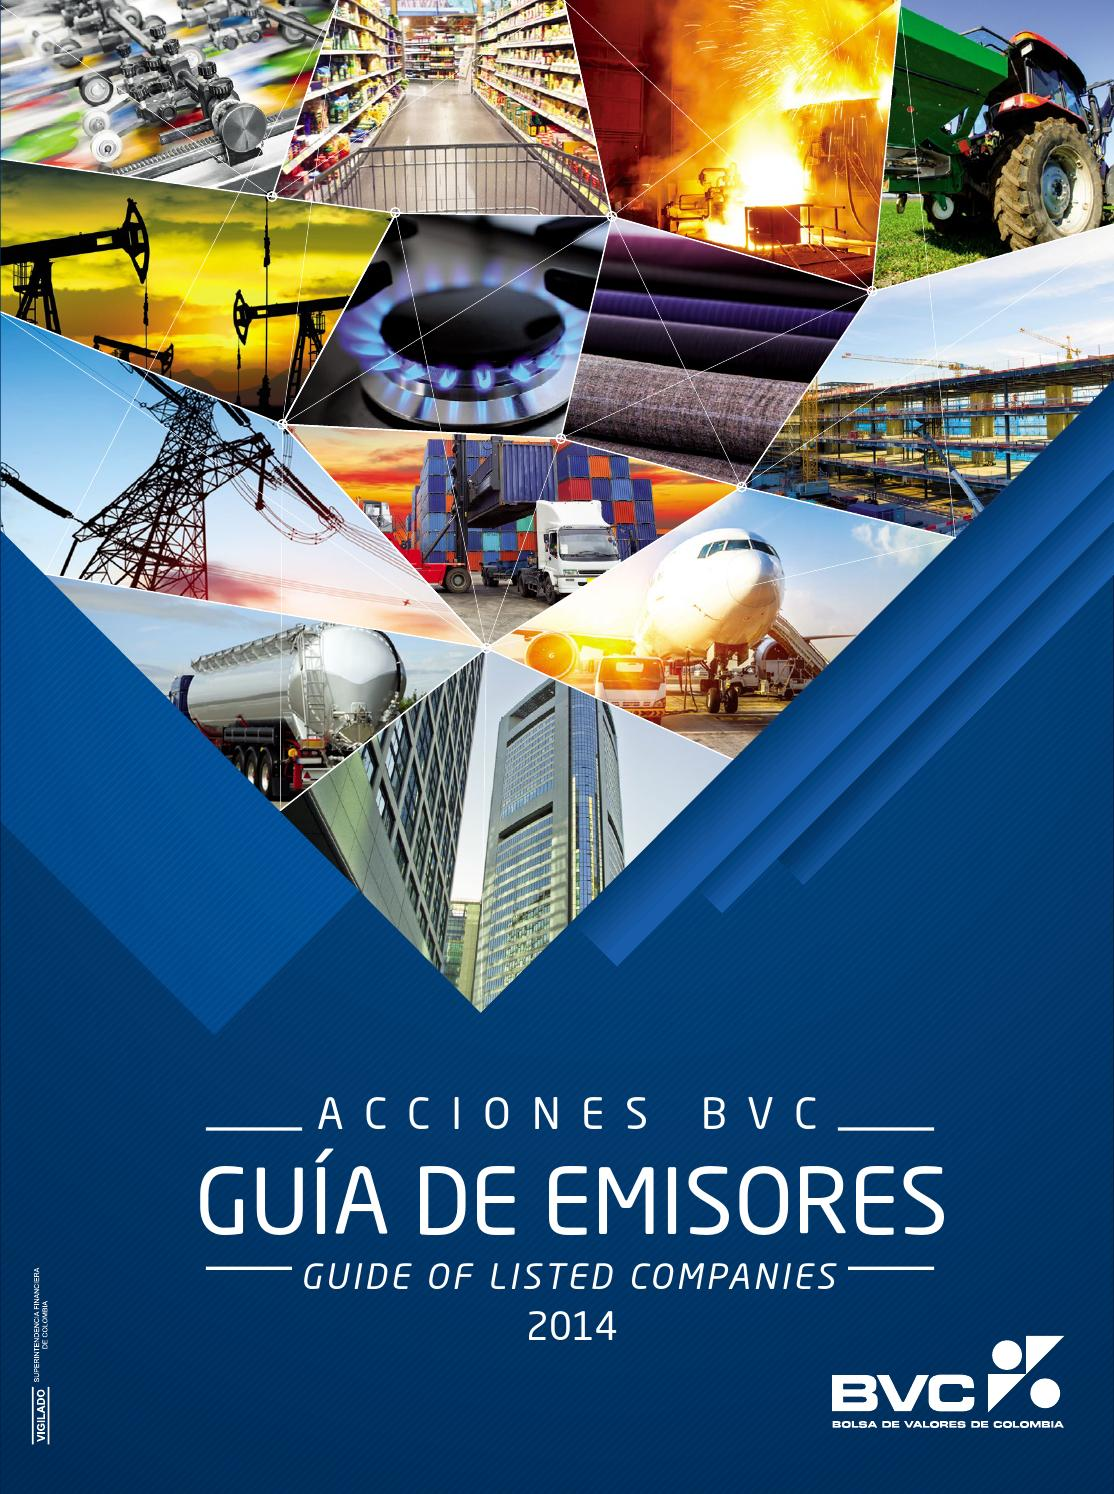 Gu A De Emisores Acciones Bvc Guide Of Listed Companies 2014 By  # Muebles Roldan Tulua